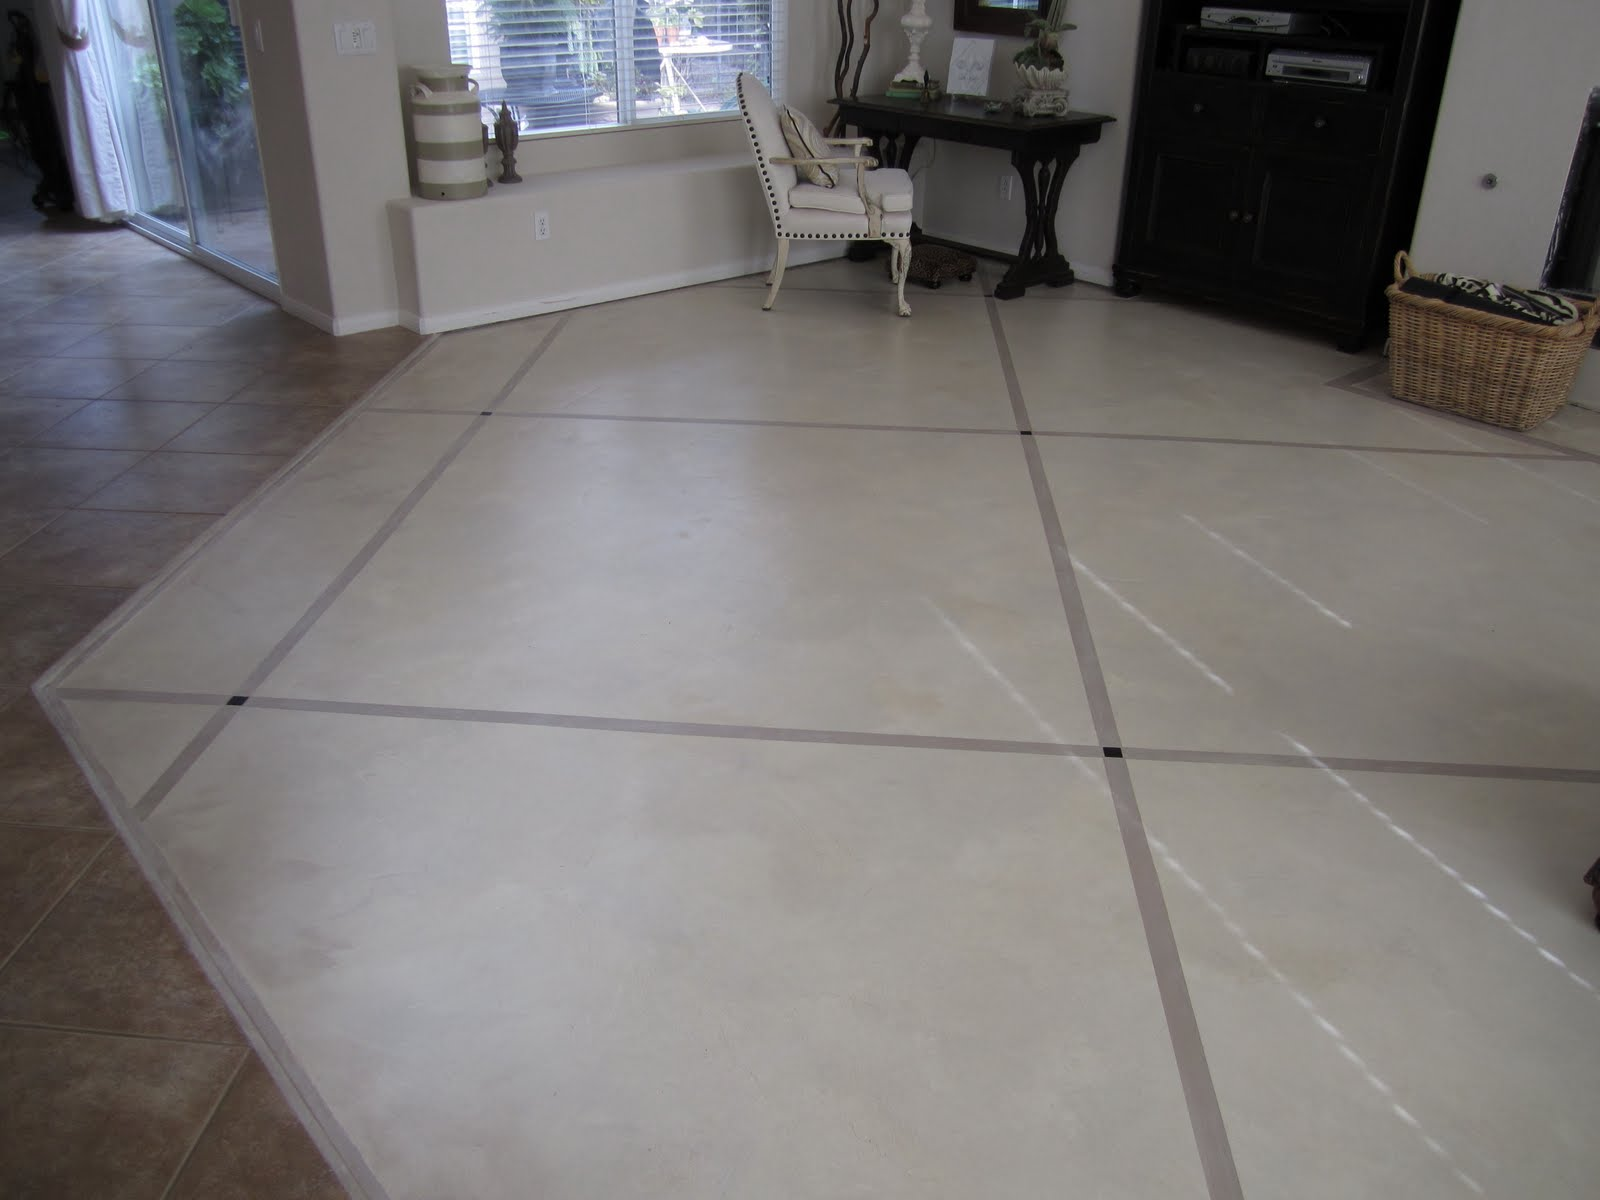 Anythingology step by step instructions on how to prep for Painting a concrete floor